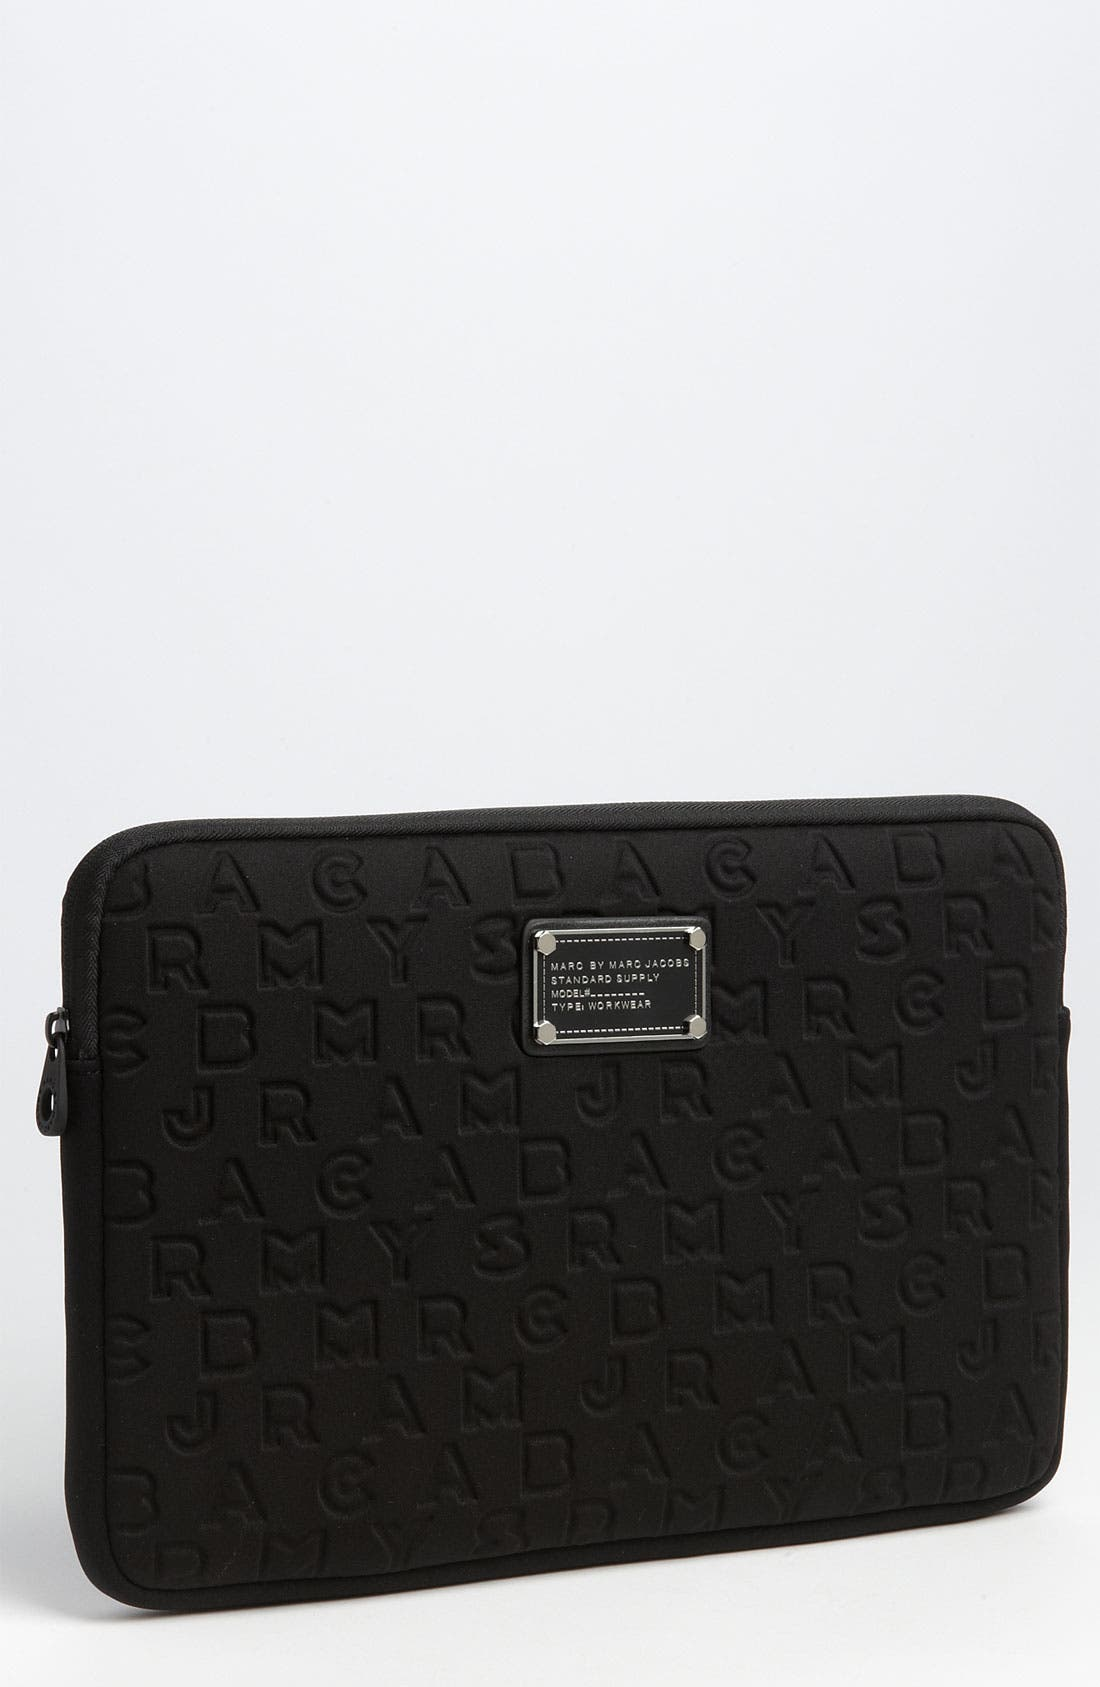 MARC BY MARC JACOBS 'Dreamy' Laptop Sleeve,                         Main,                         color, 001